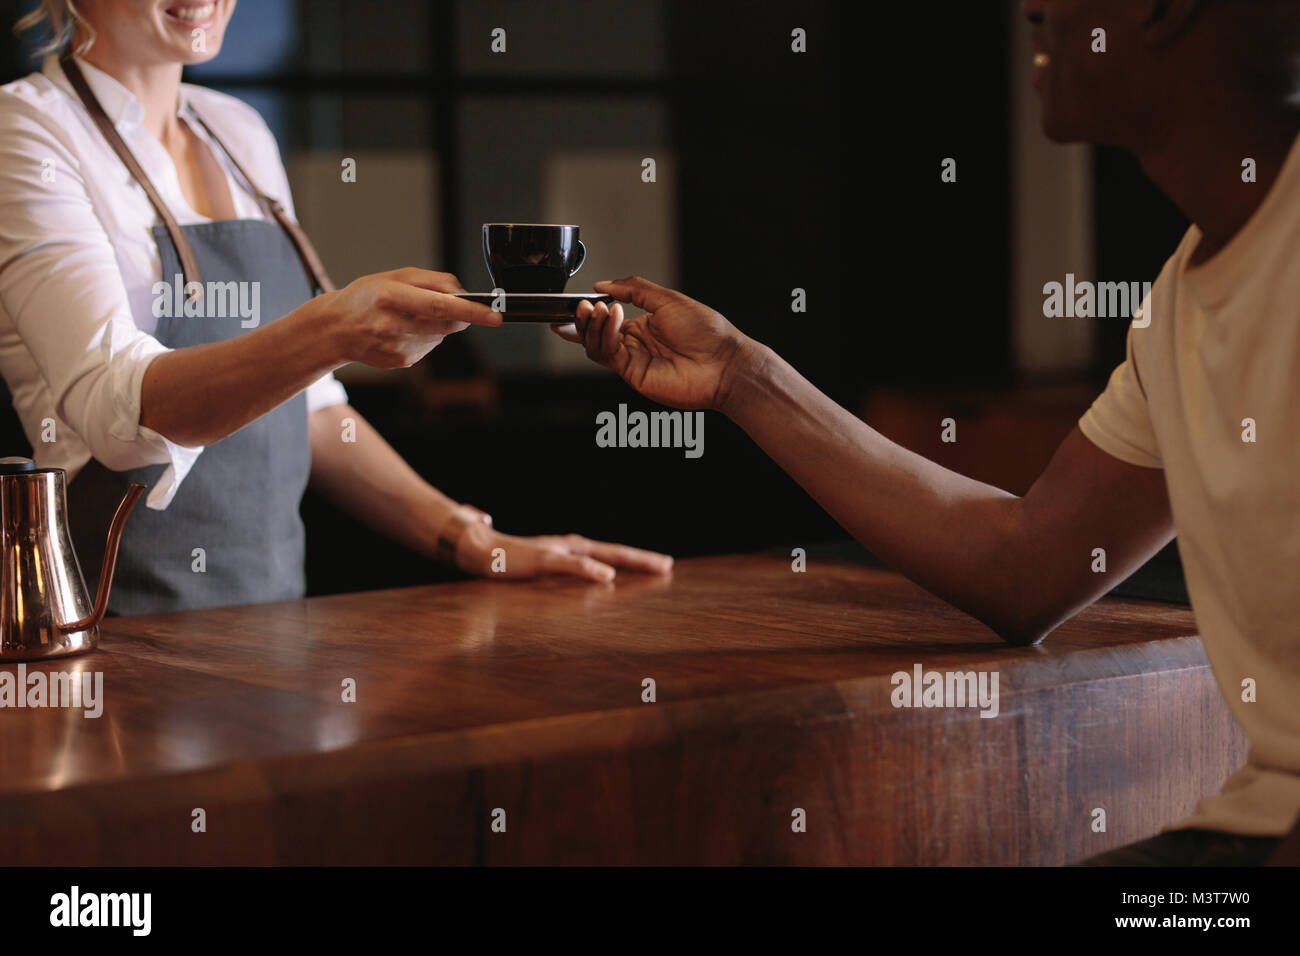 Woman serving coffee over the counter to a customer. Cropped shot of coffee shop owner handing over a cup of coffee - Stock Image